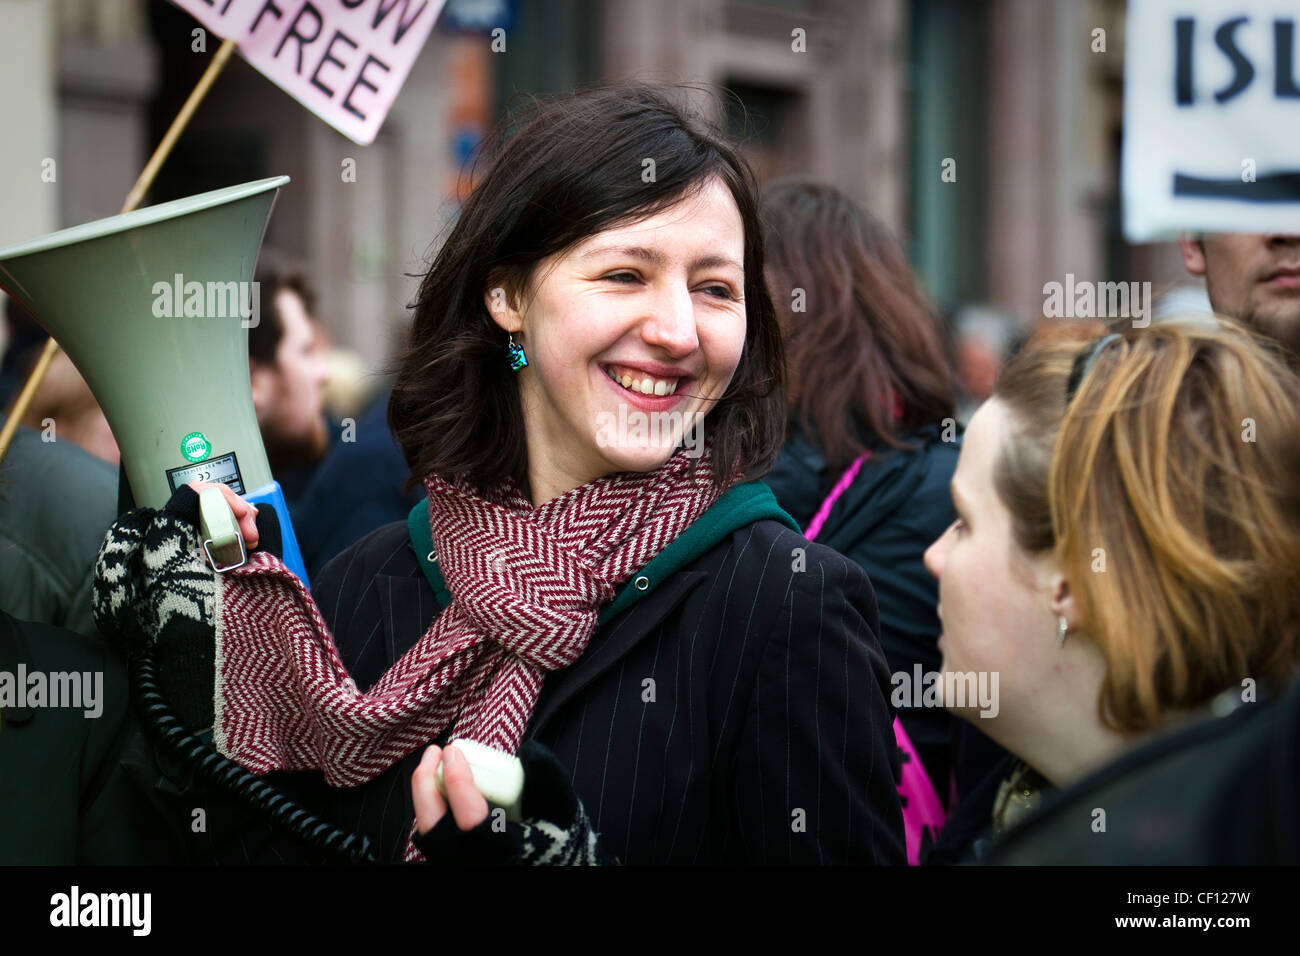 Young woman a with a loudspeaker at a street demonstration against racism, Glasgow, Scotland - Stock Image